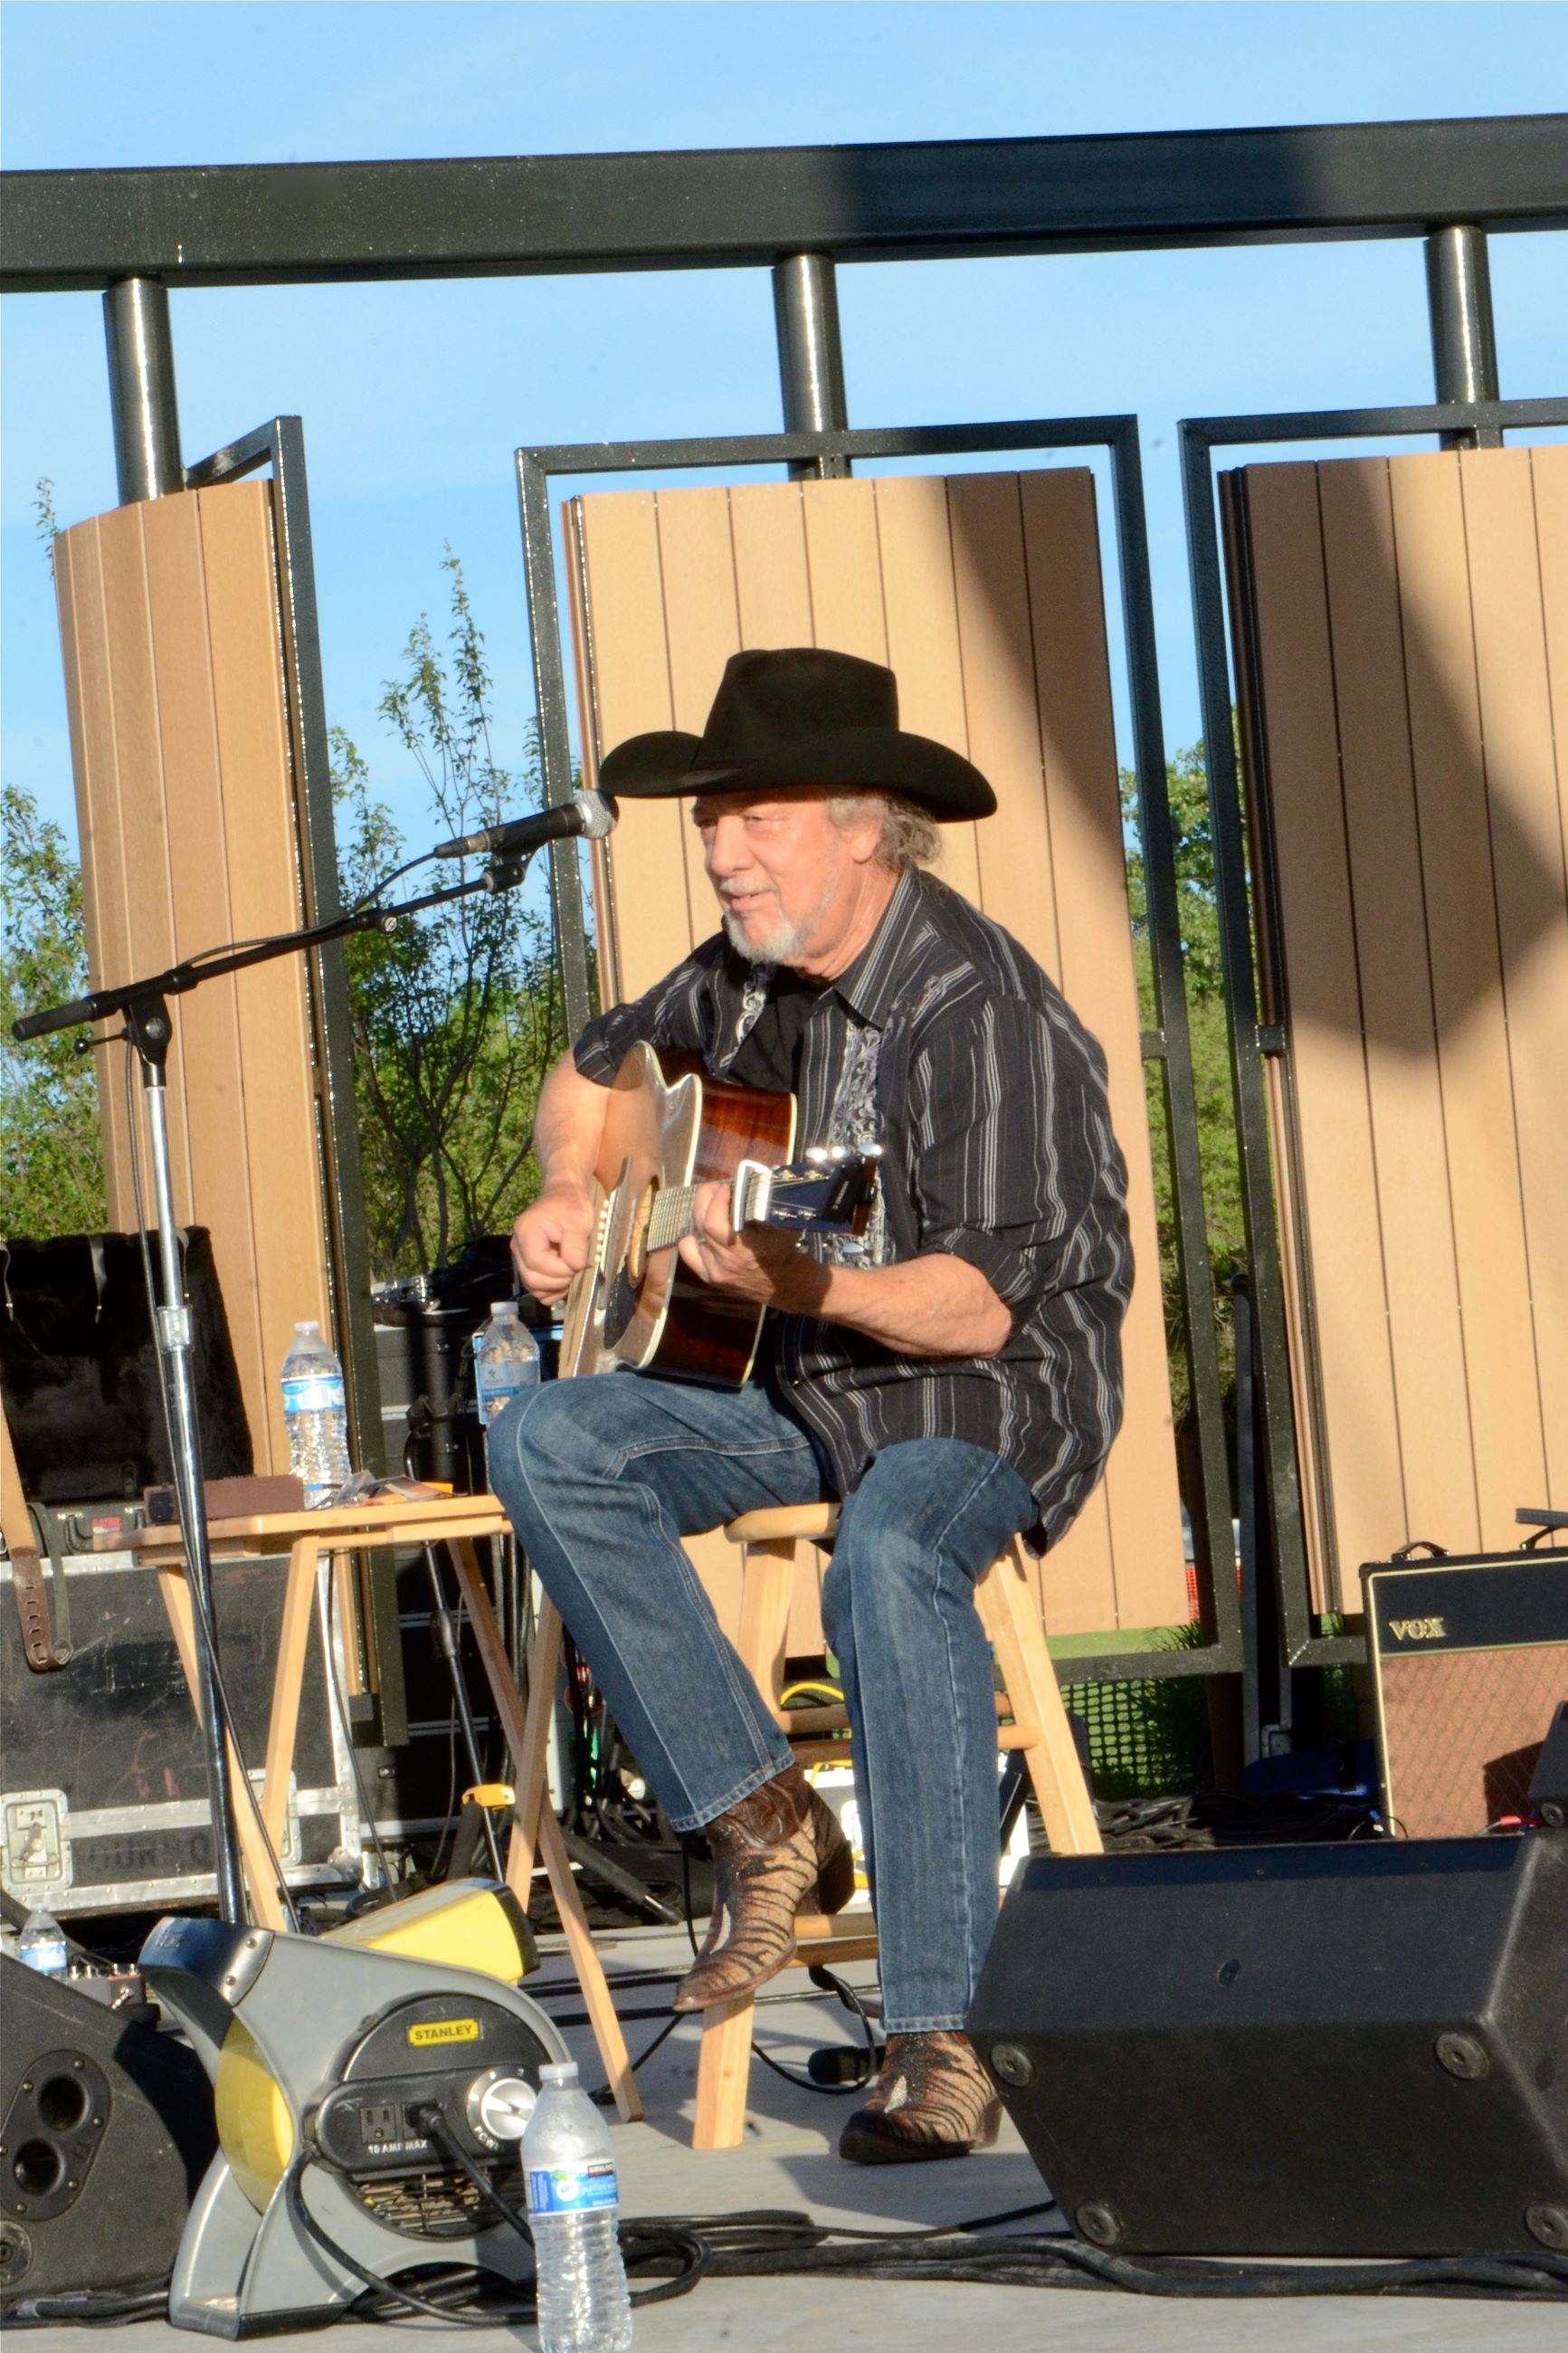 May 26 Concert Image of John Anderson on Stage